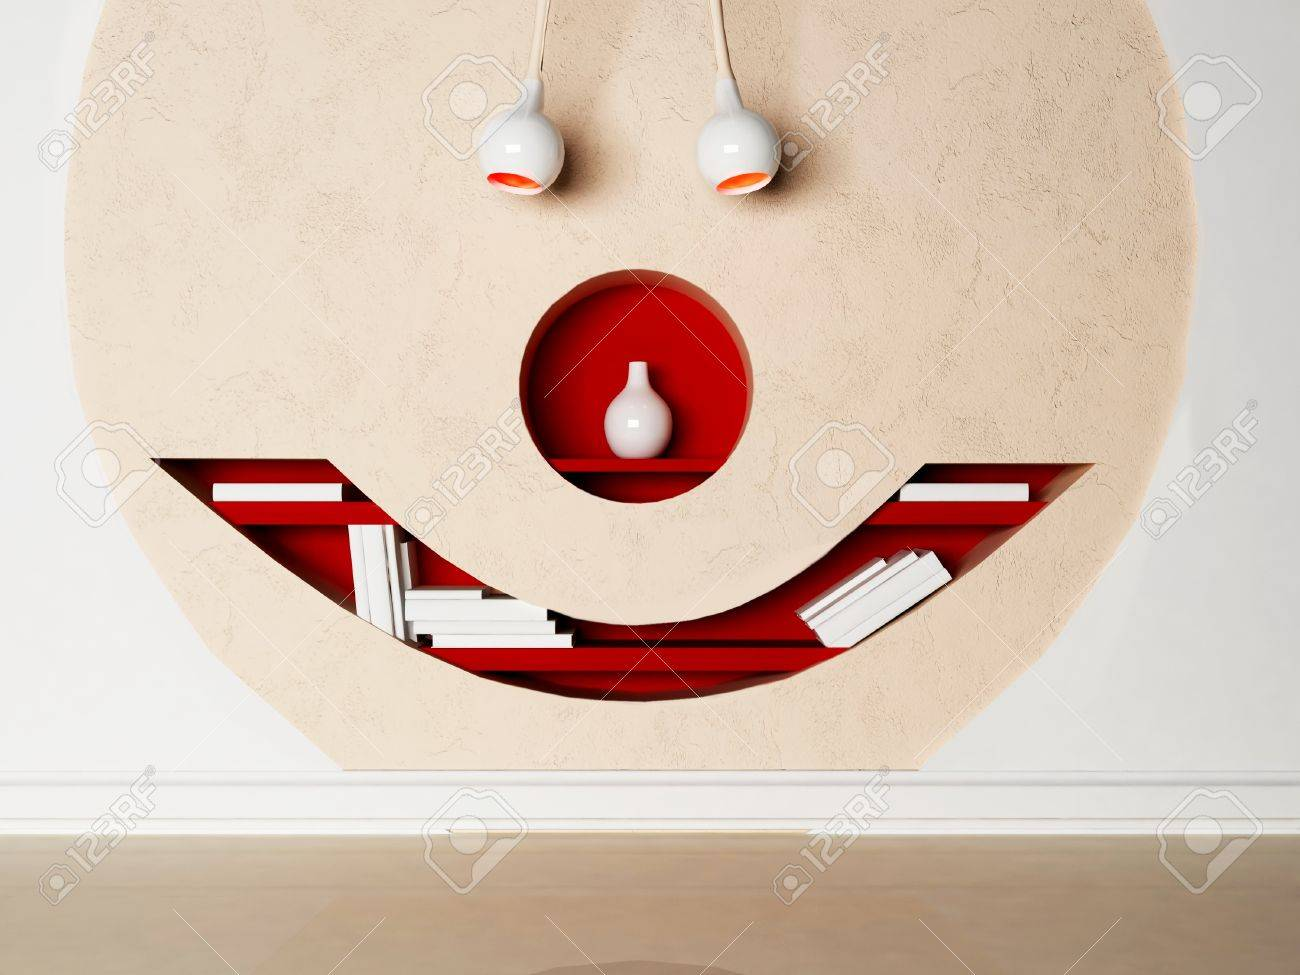 creative shelves on the wall in the shape of the face stock photo